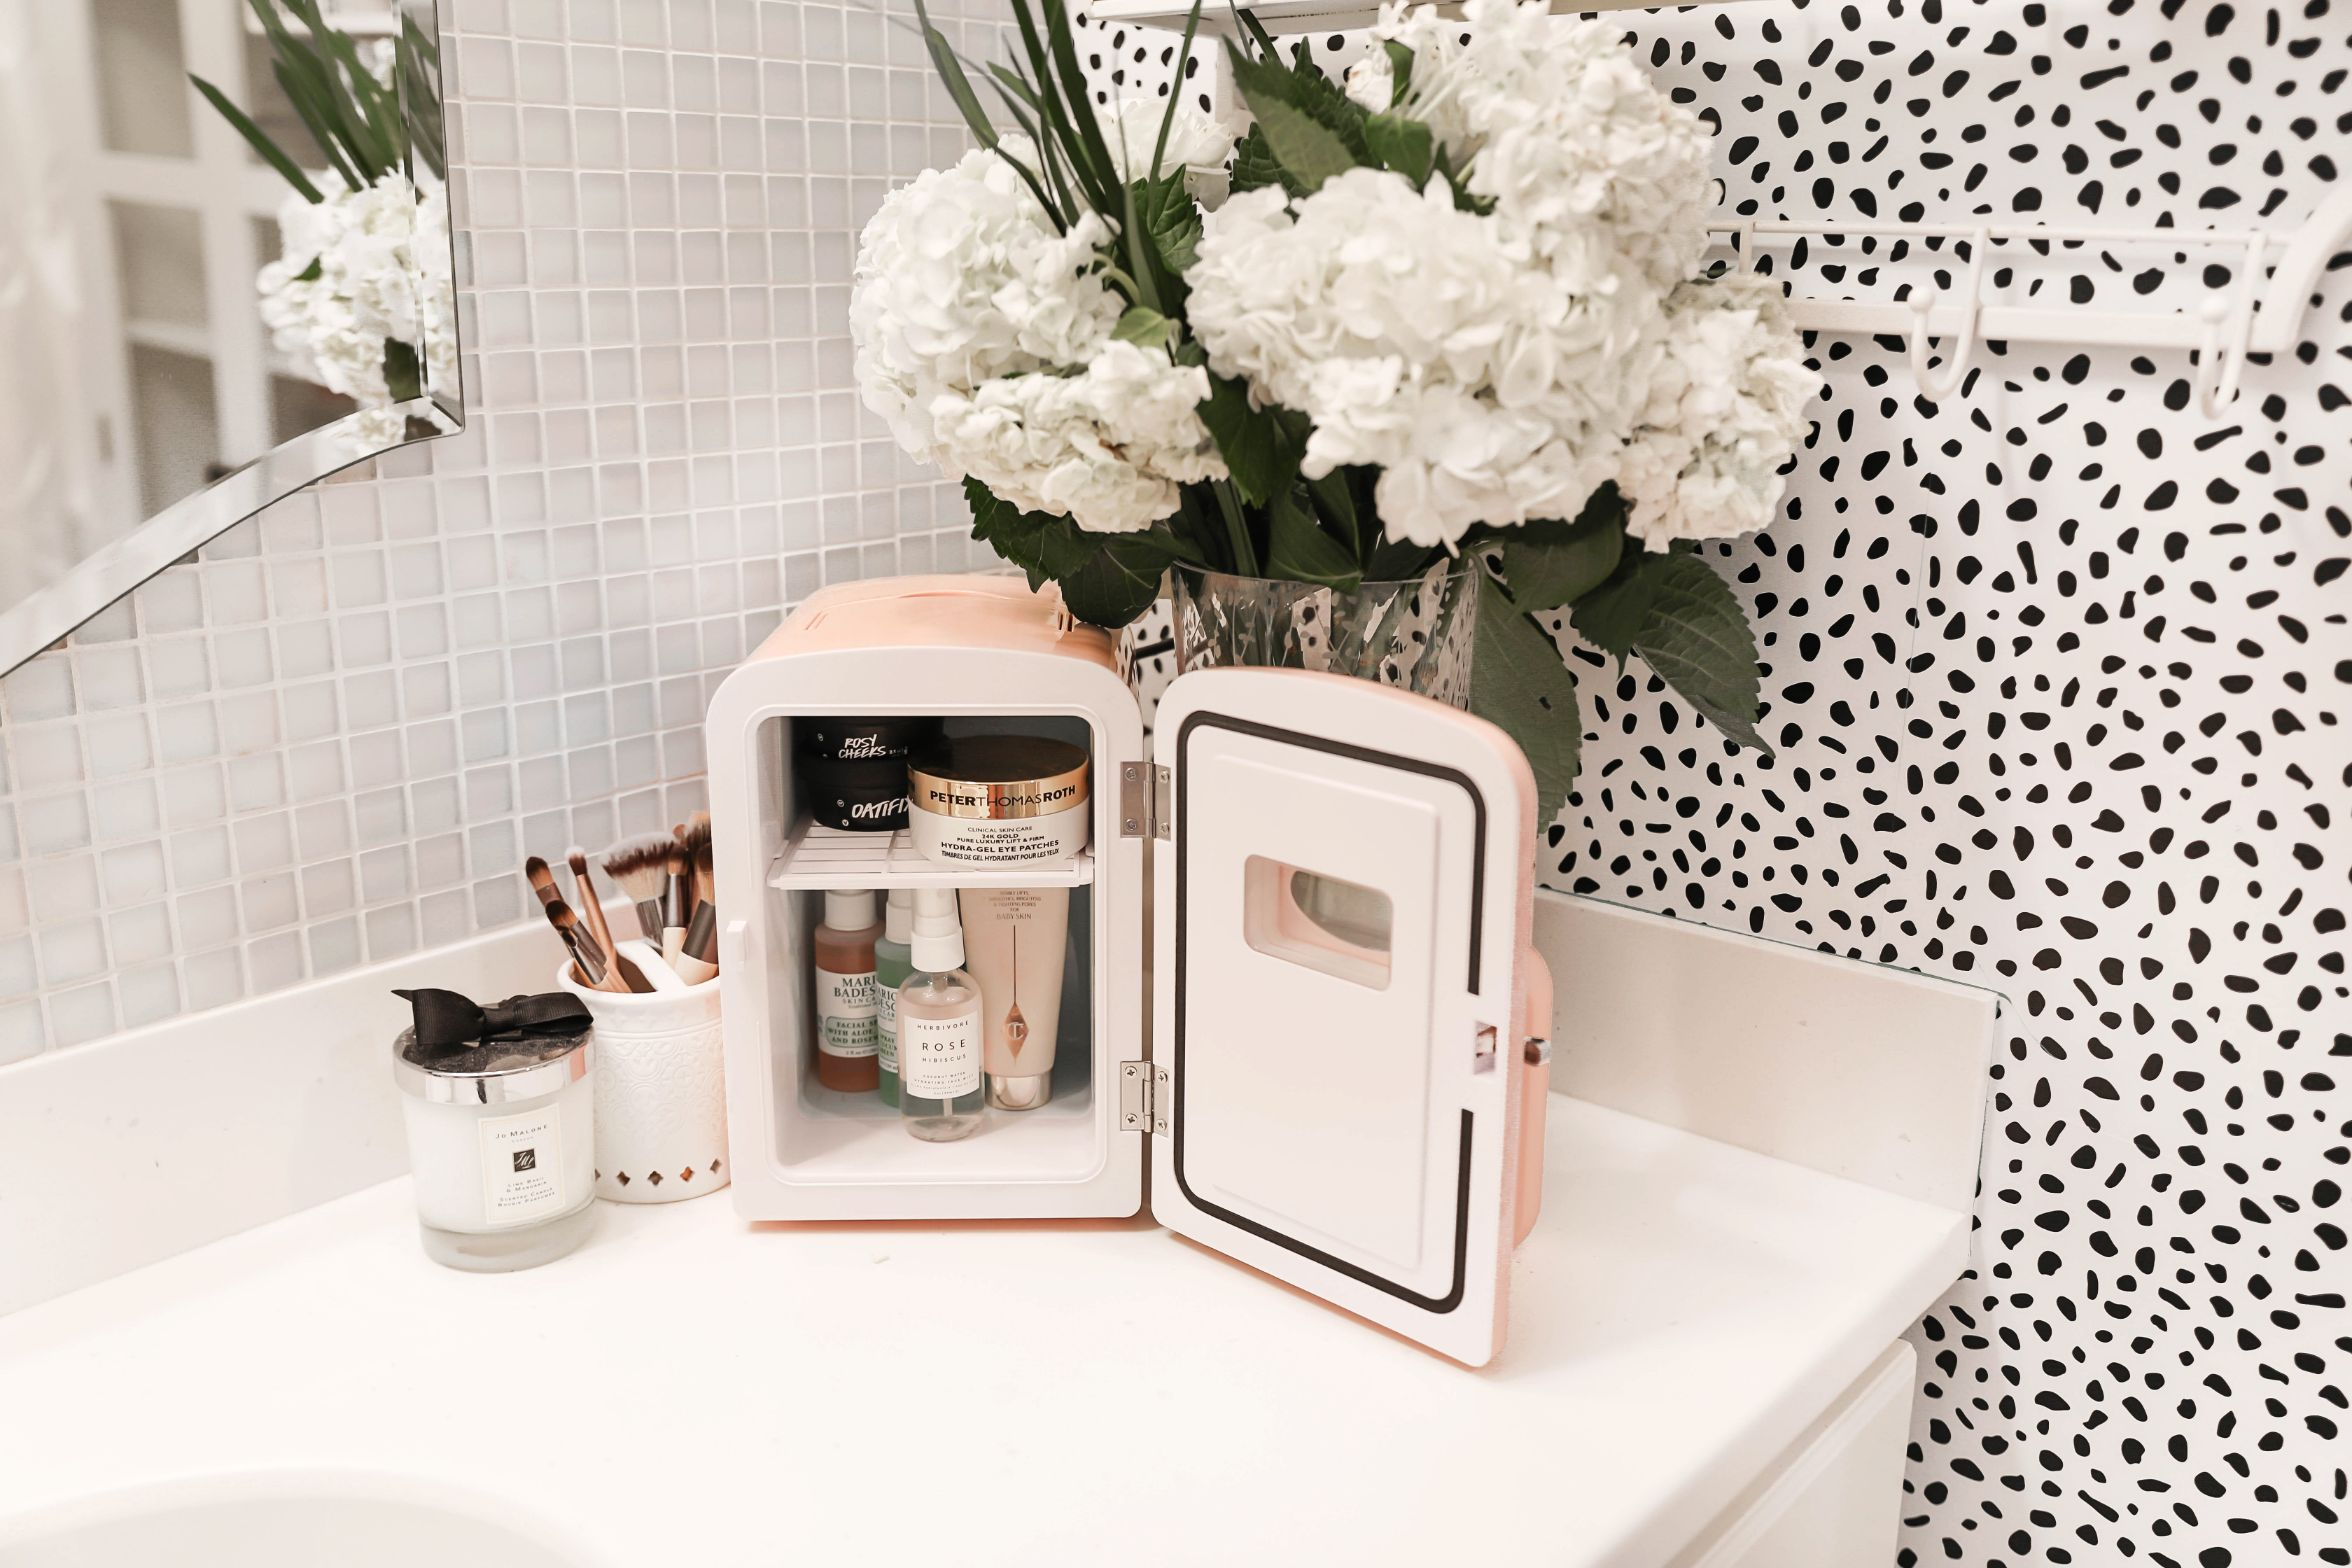 Beauty favorites spring 2019! I love my frigidaire mini retro beauty fridge! I stocked it with amazing face mask and lush products! Details on beauty and fashion blog daily dose of charm by lauren lindmark